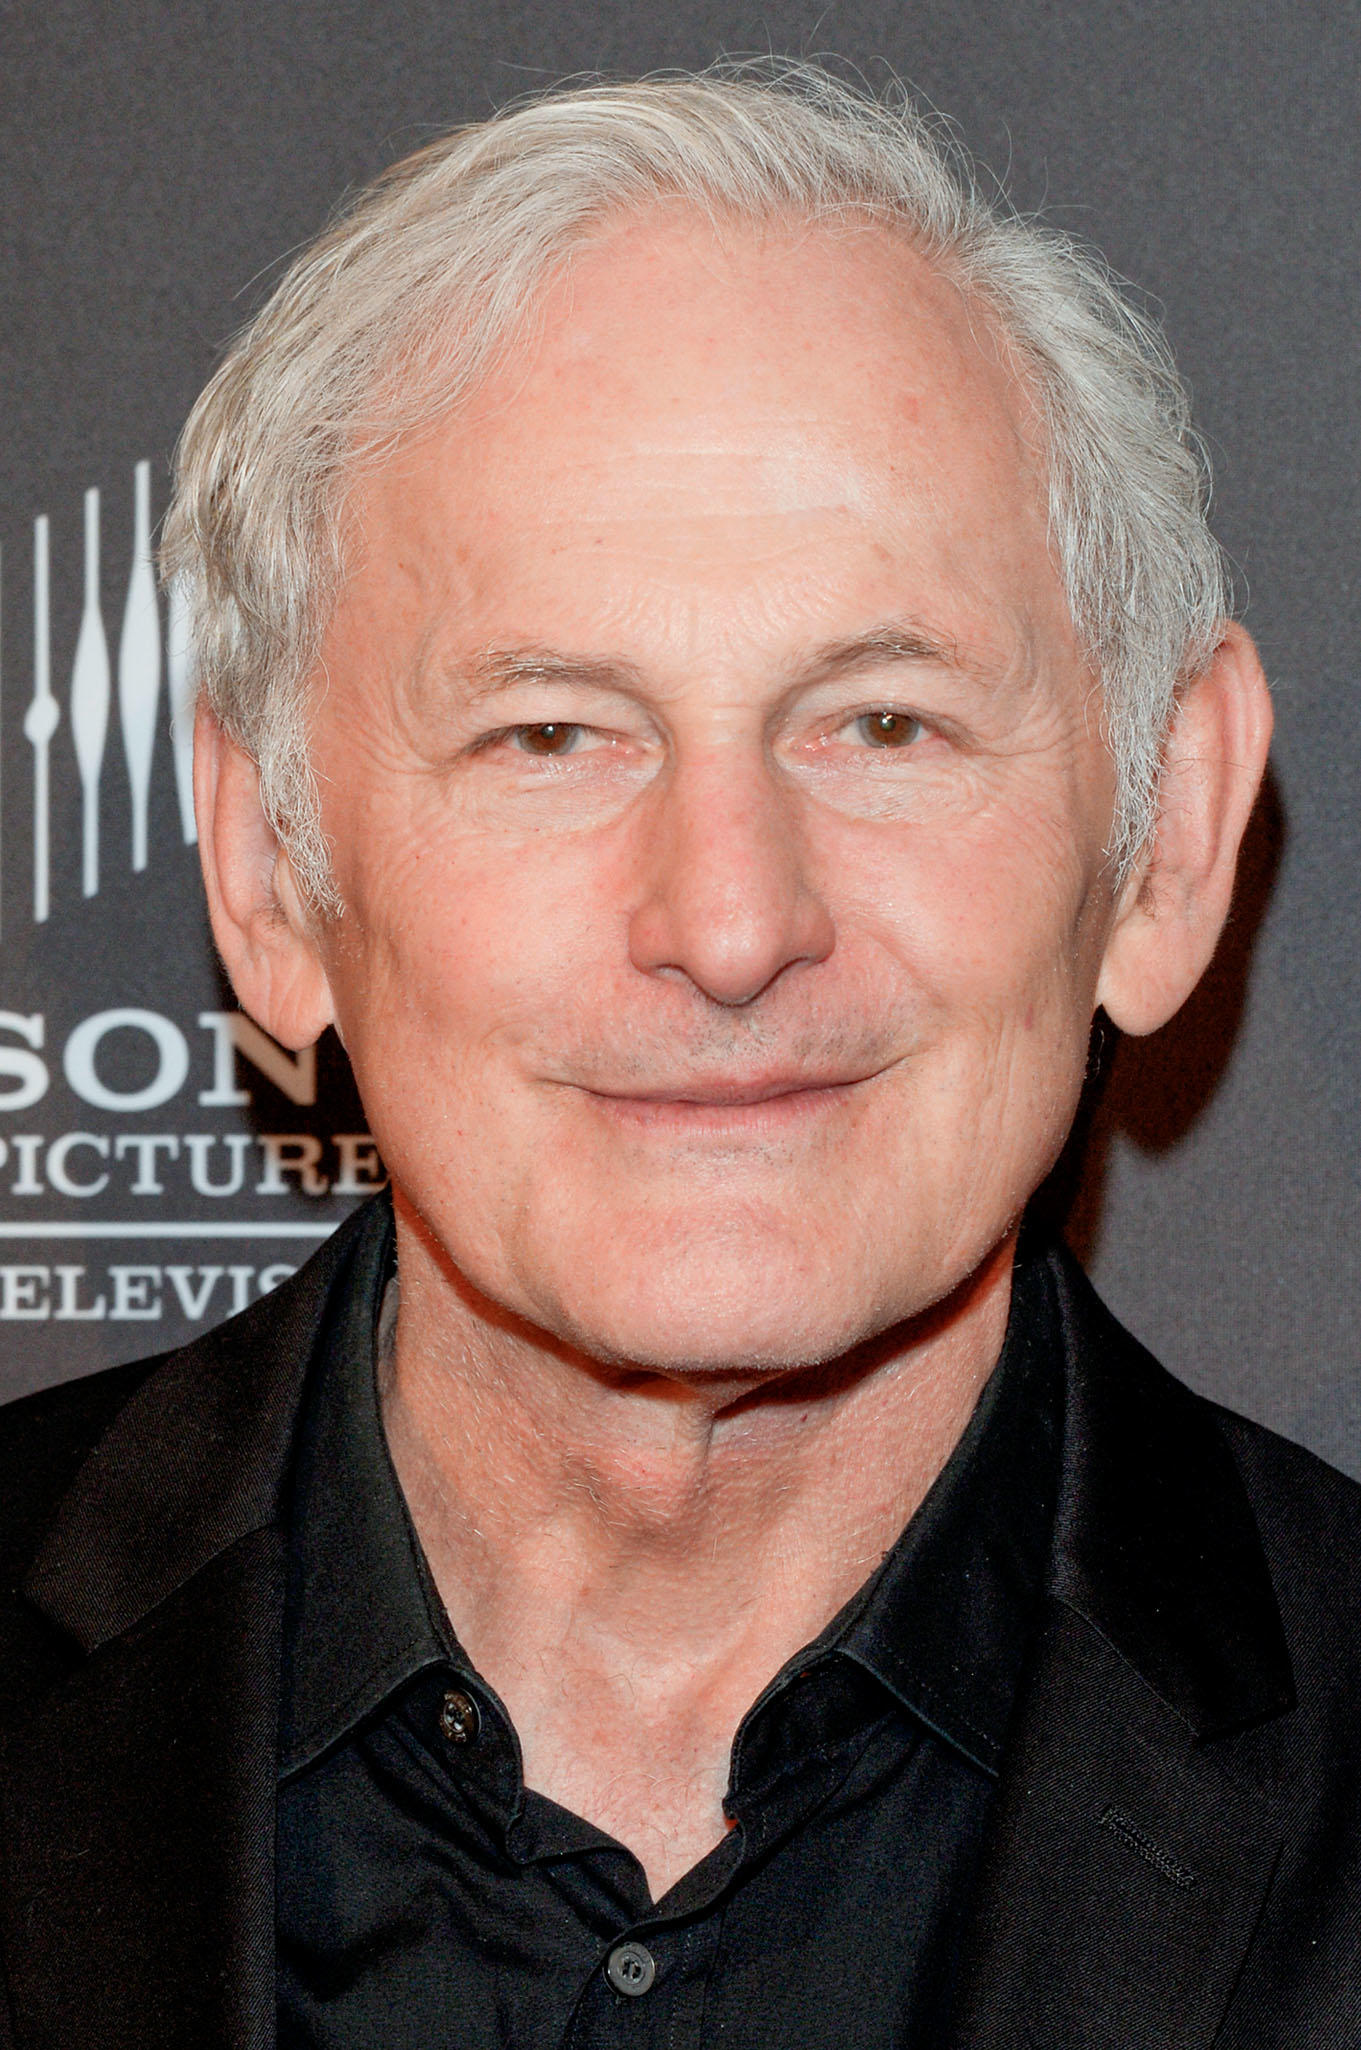 Victor Garber at the Lifetime special screening of